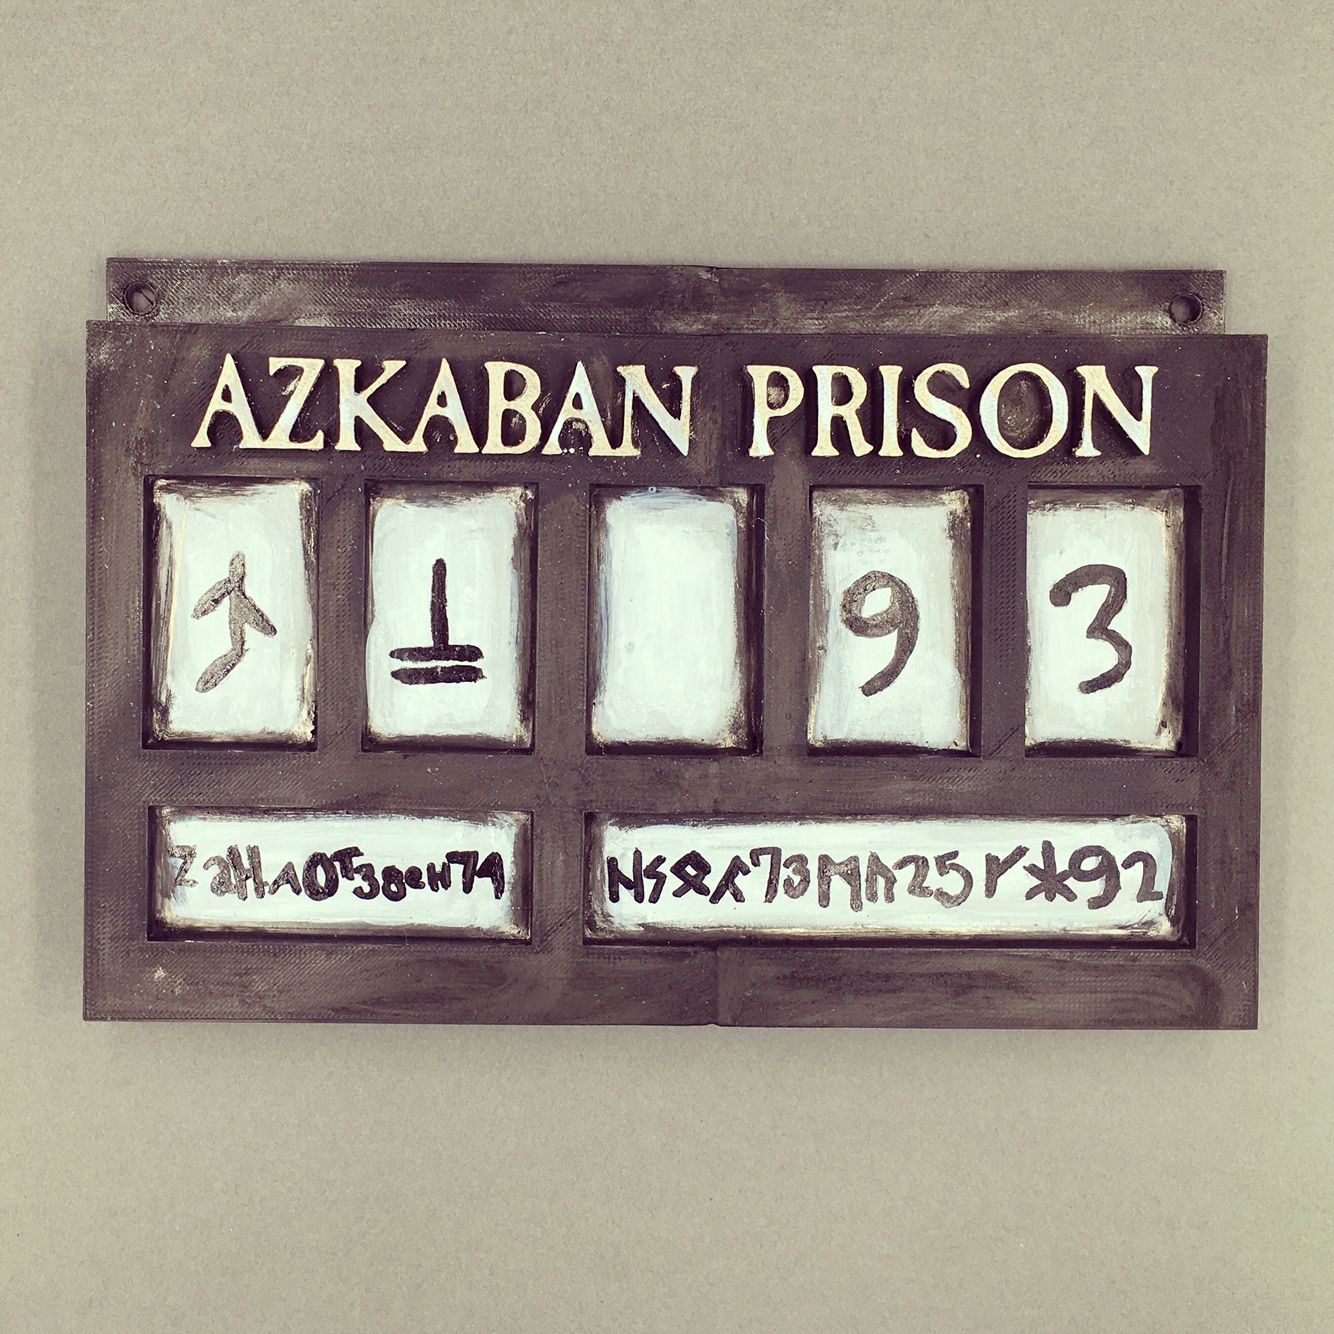 I modeled, 3D printed and painted my Azkaban prison sign